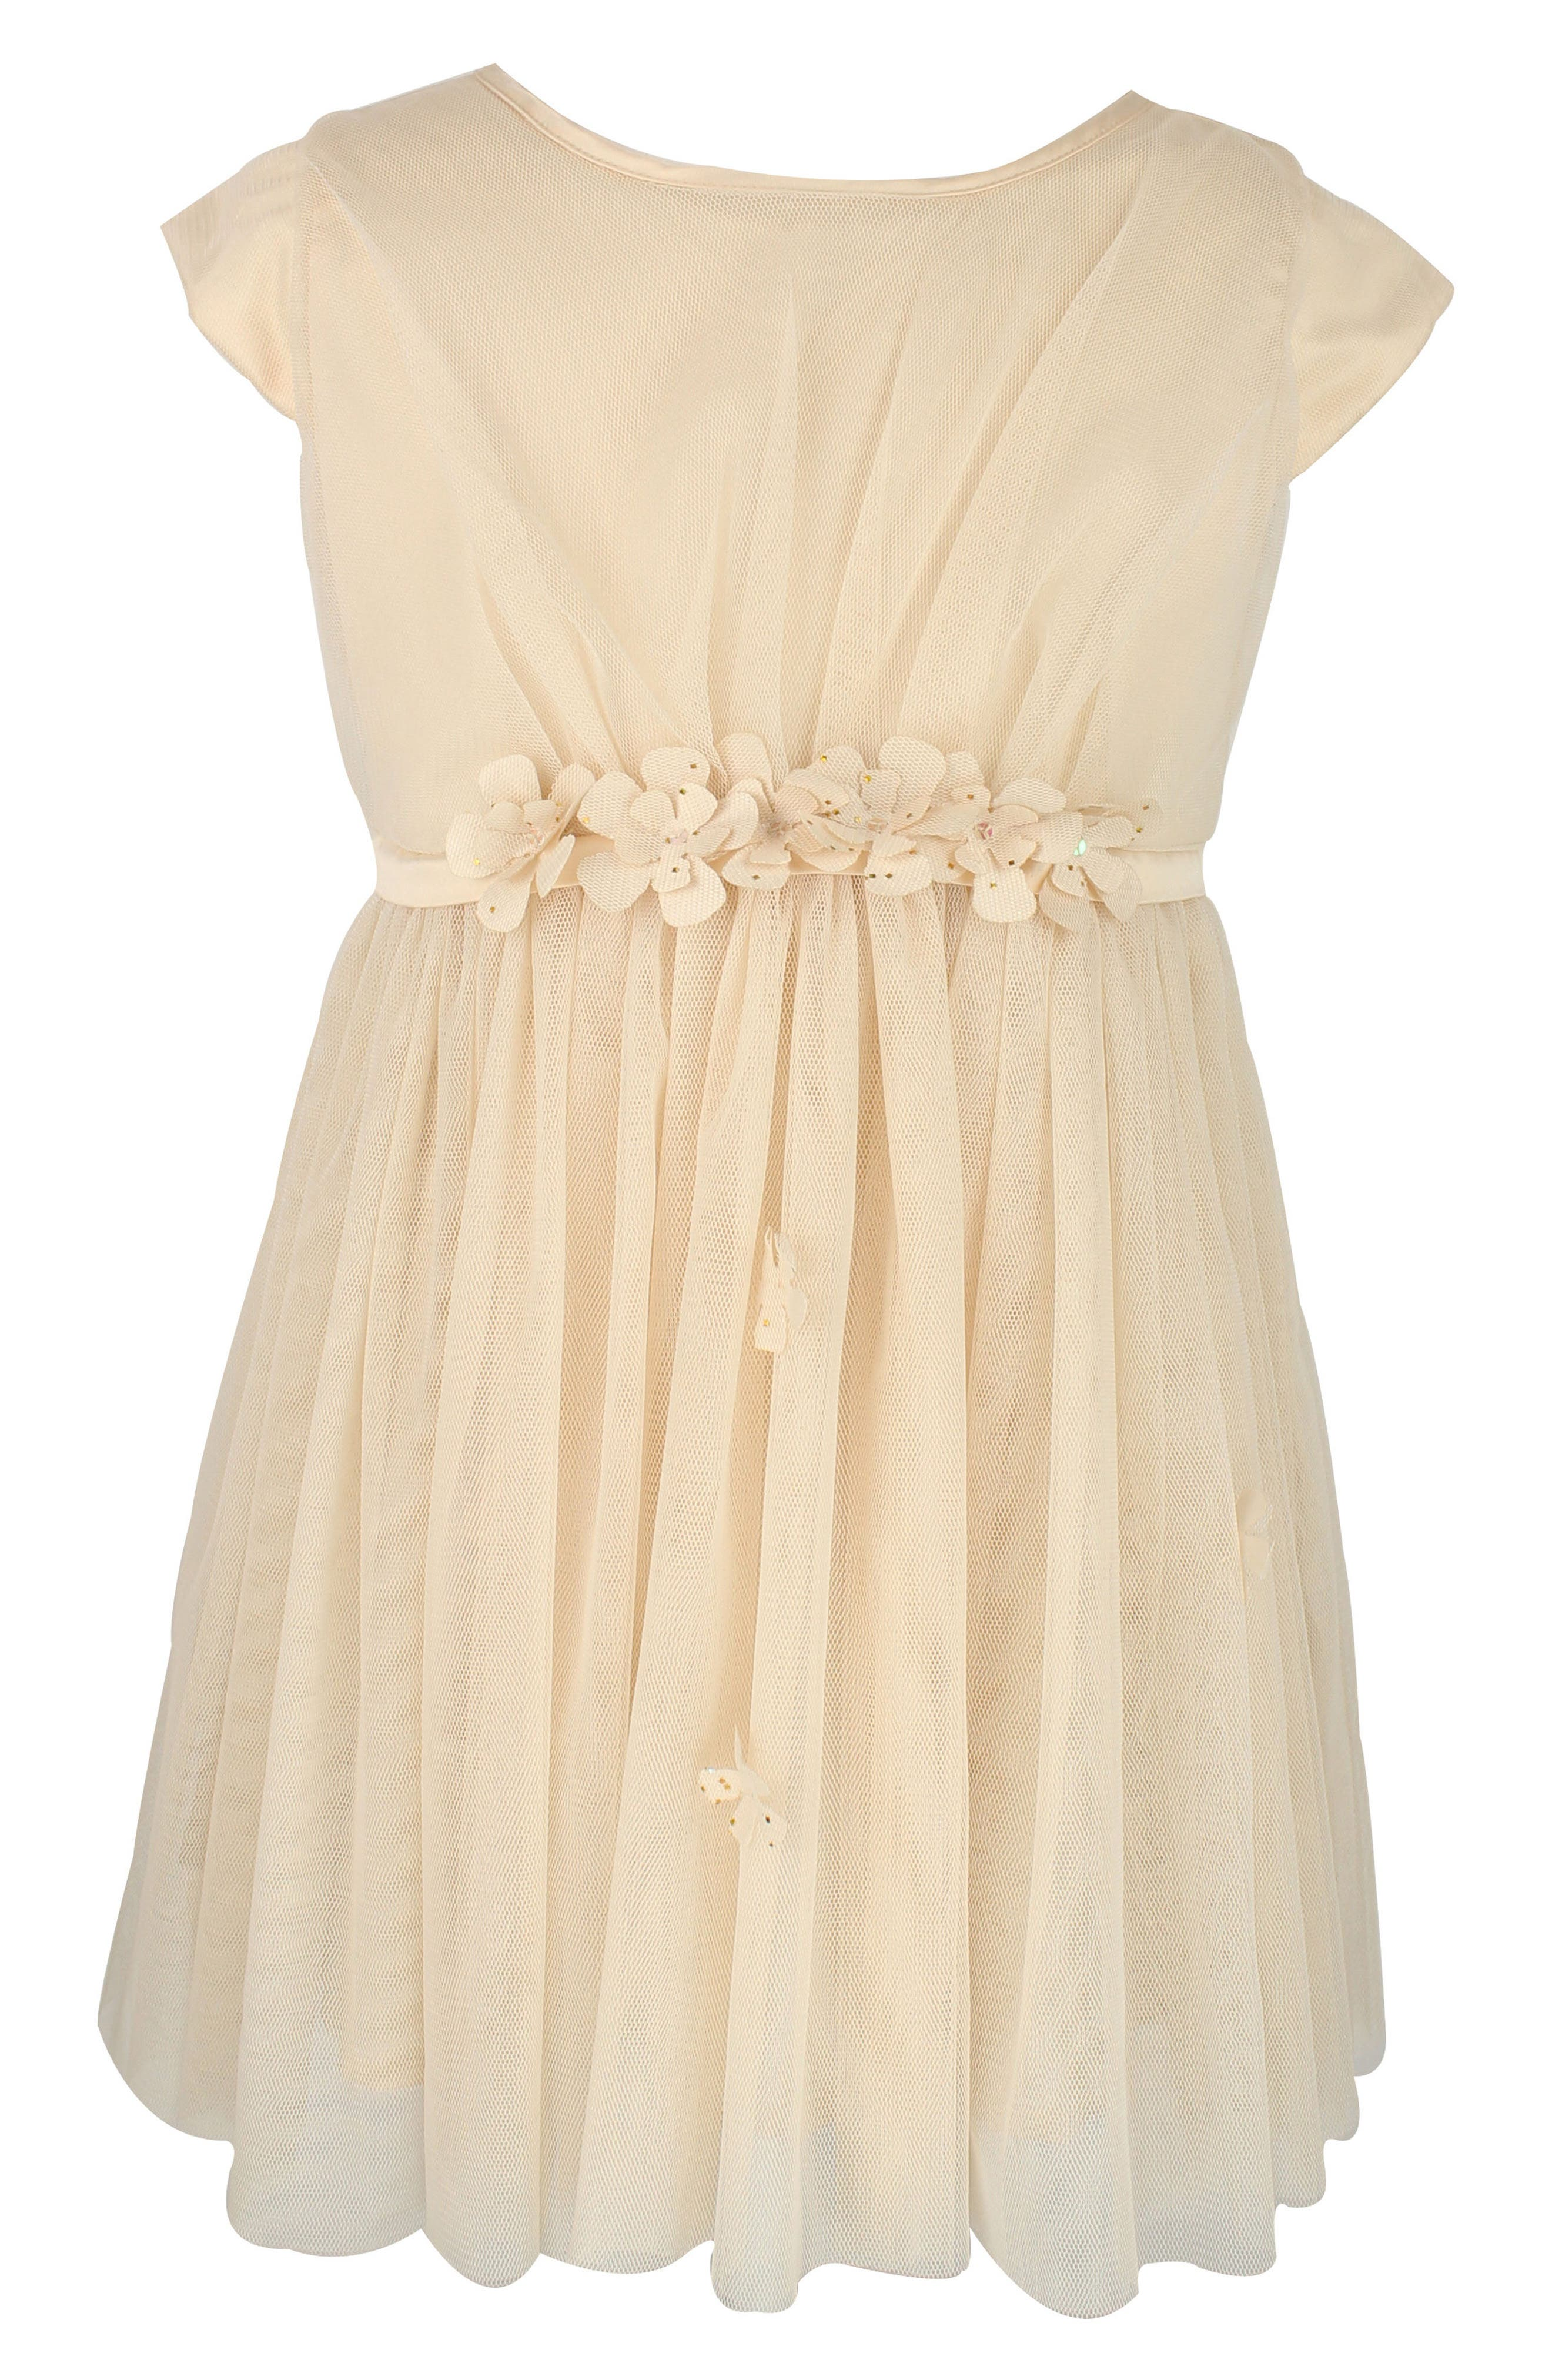 Embellished Tulle Dress,                             Main thumbnail 1, color,                             IVORY